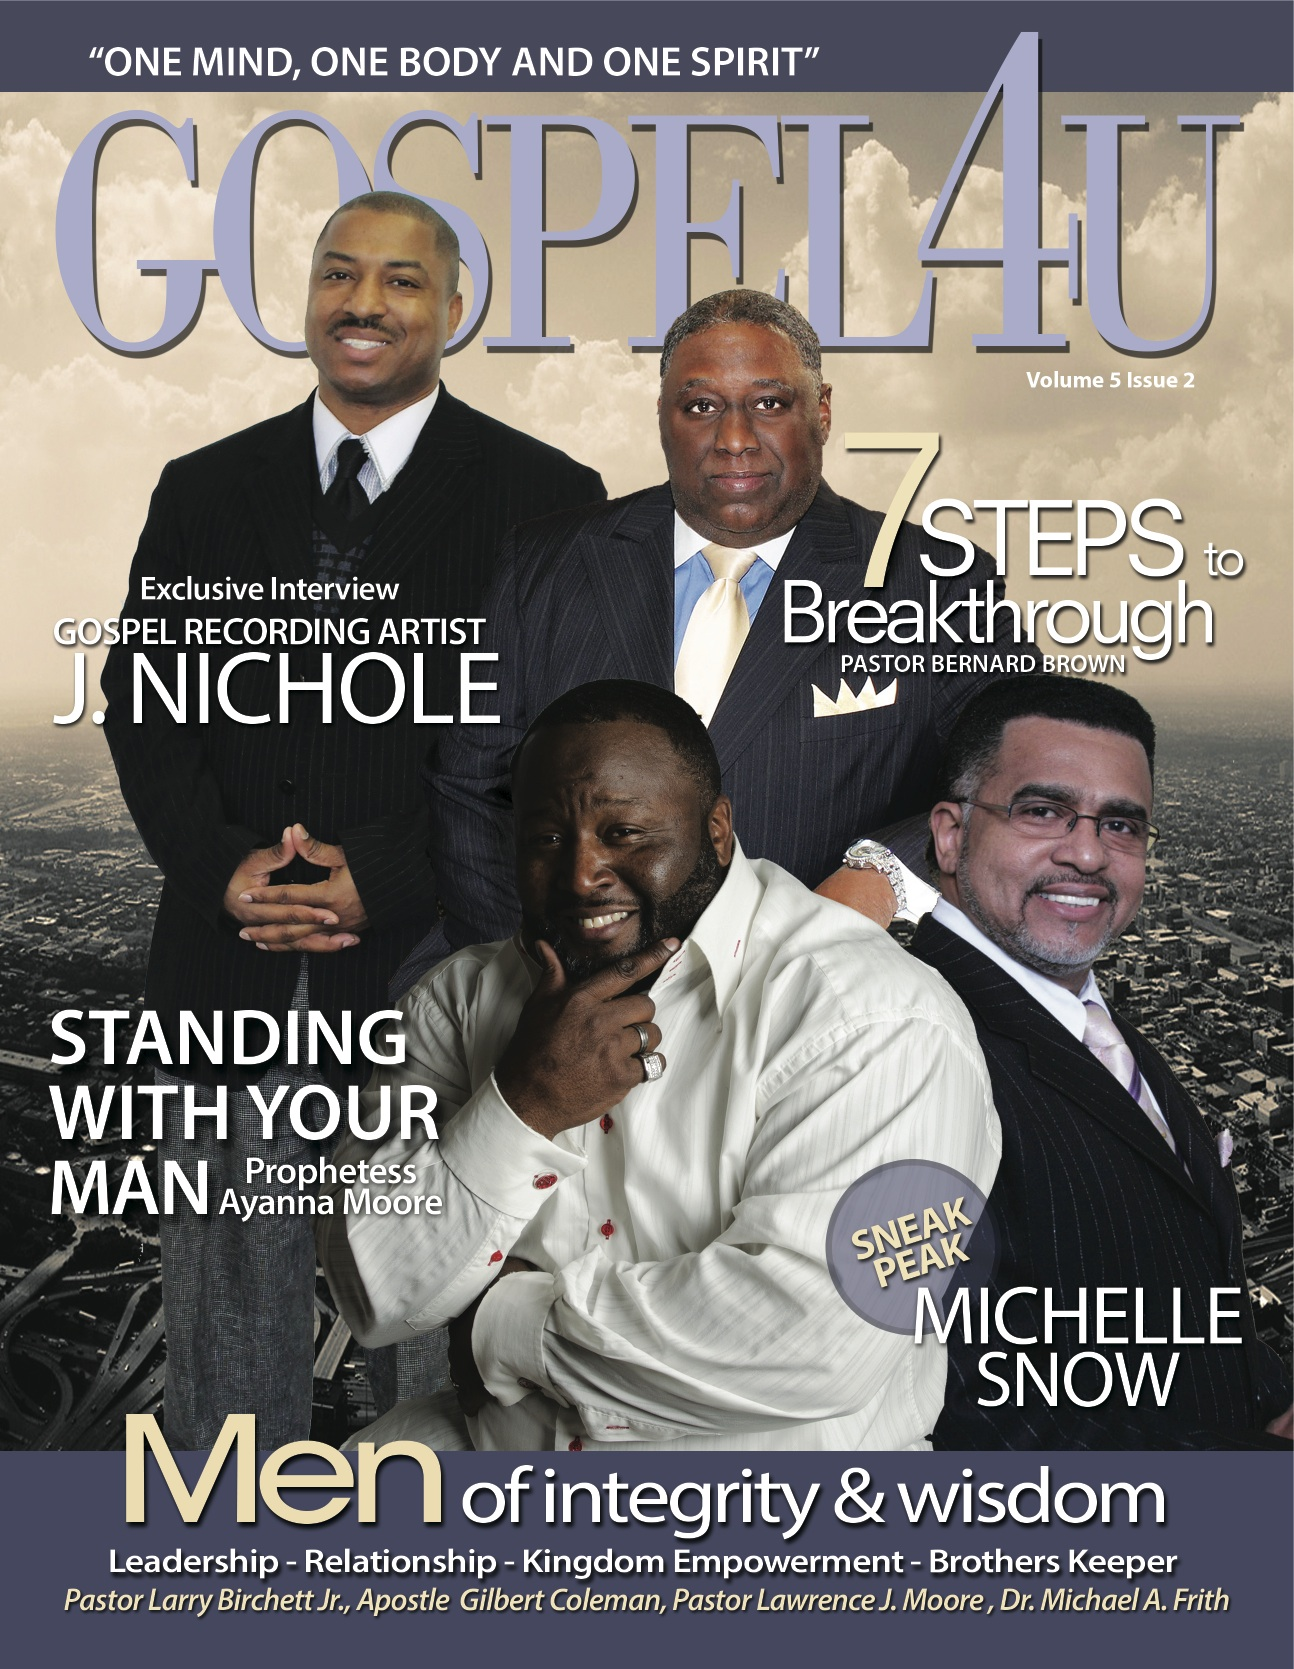 Gospel 4 U - March 2014 Issue